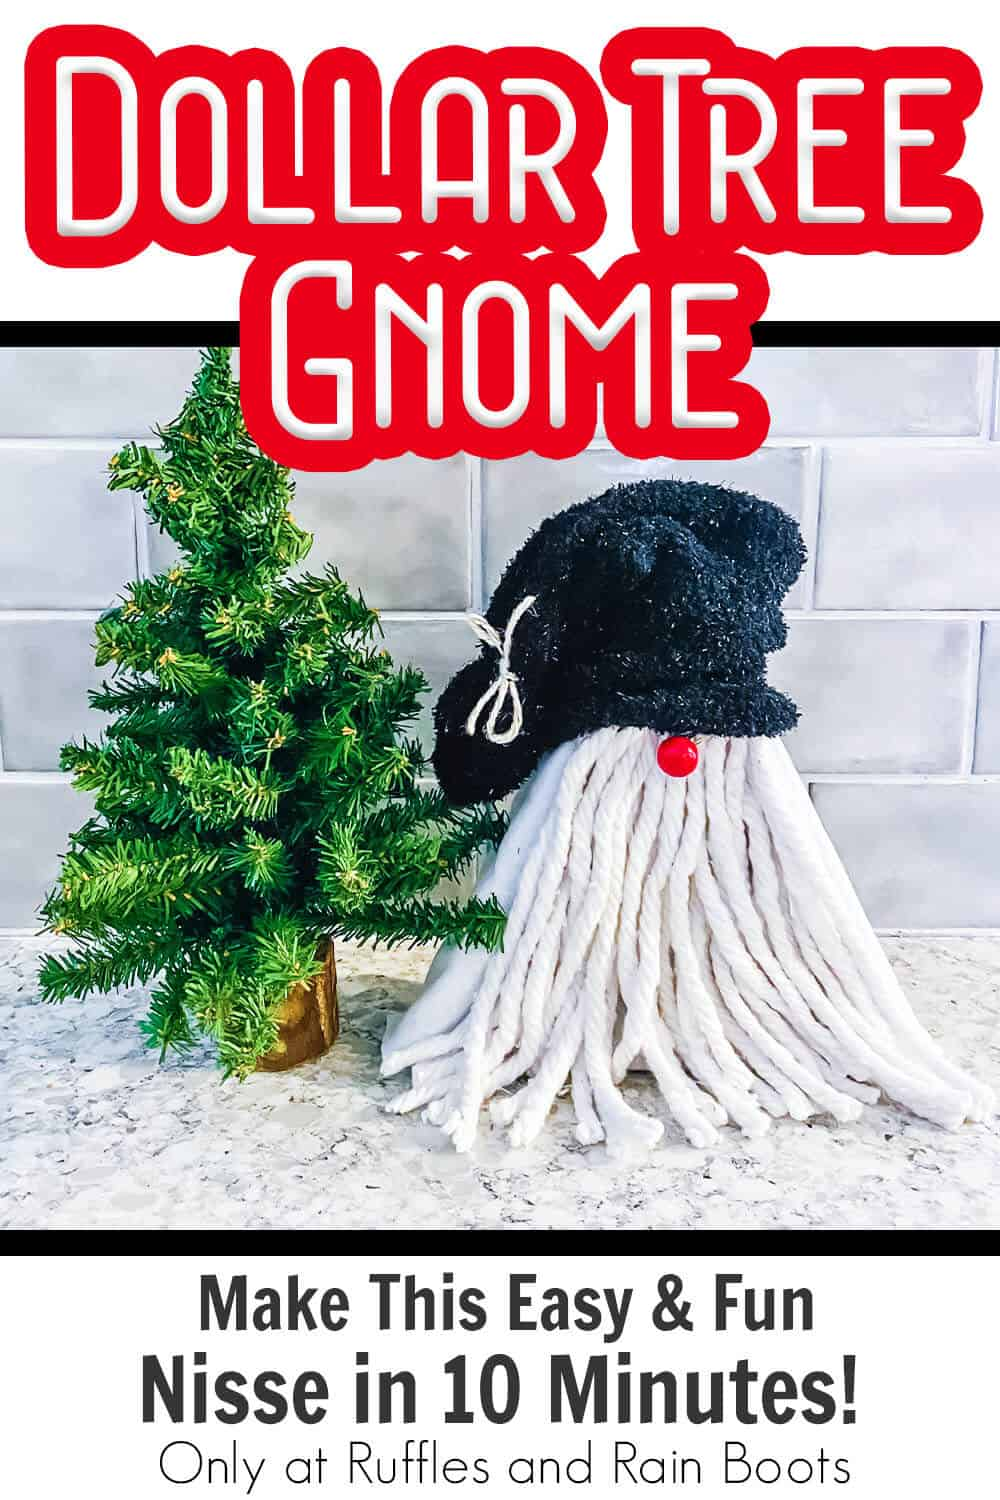 diy farmhouse gnome from a dollar tree shelf with text which reads dollar tree gnome make this easy & fun gnome in 10 minutes!